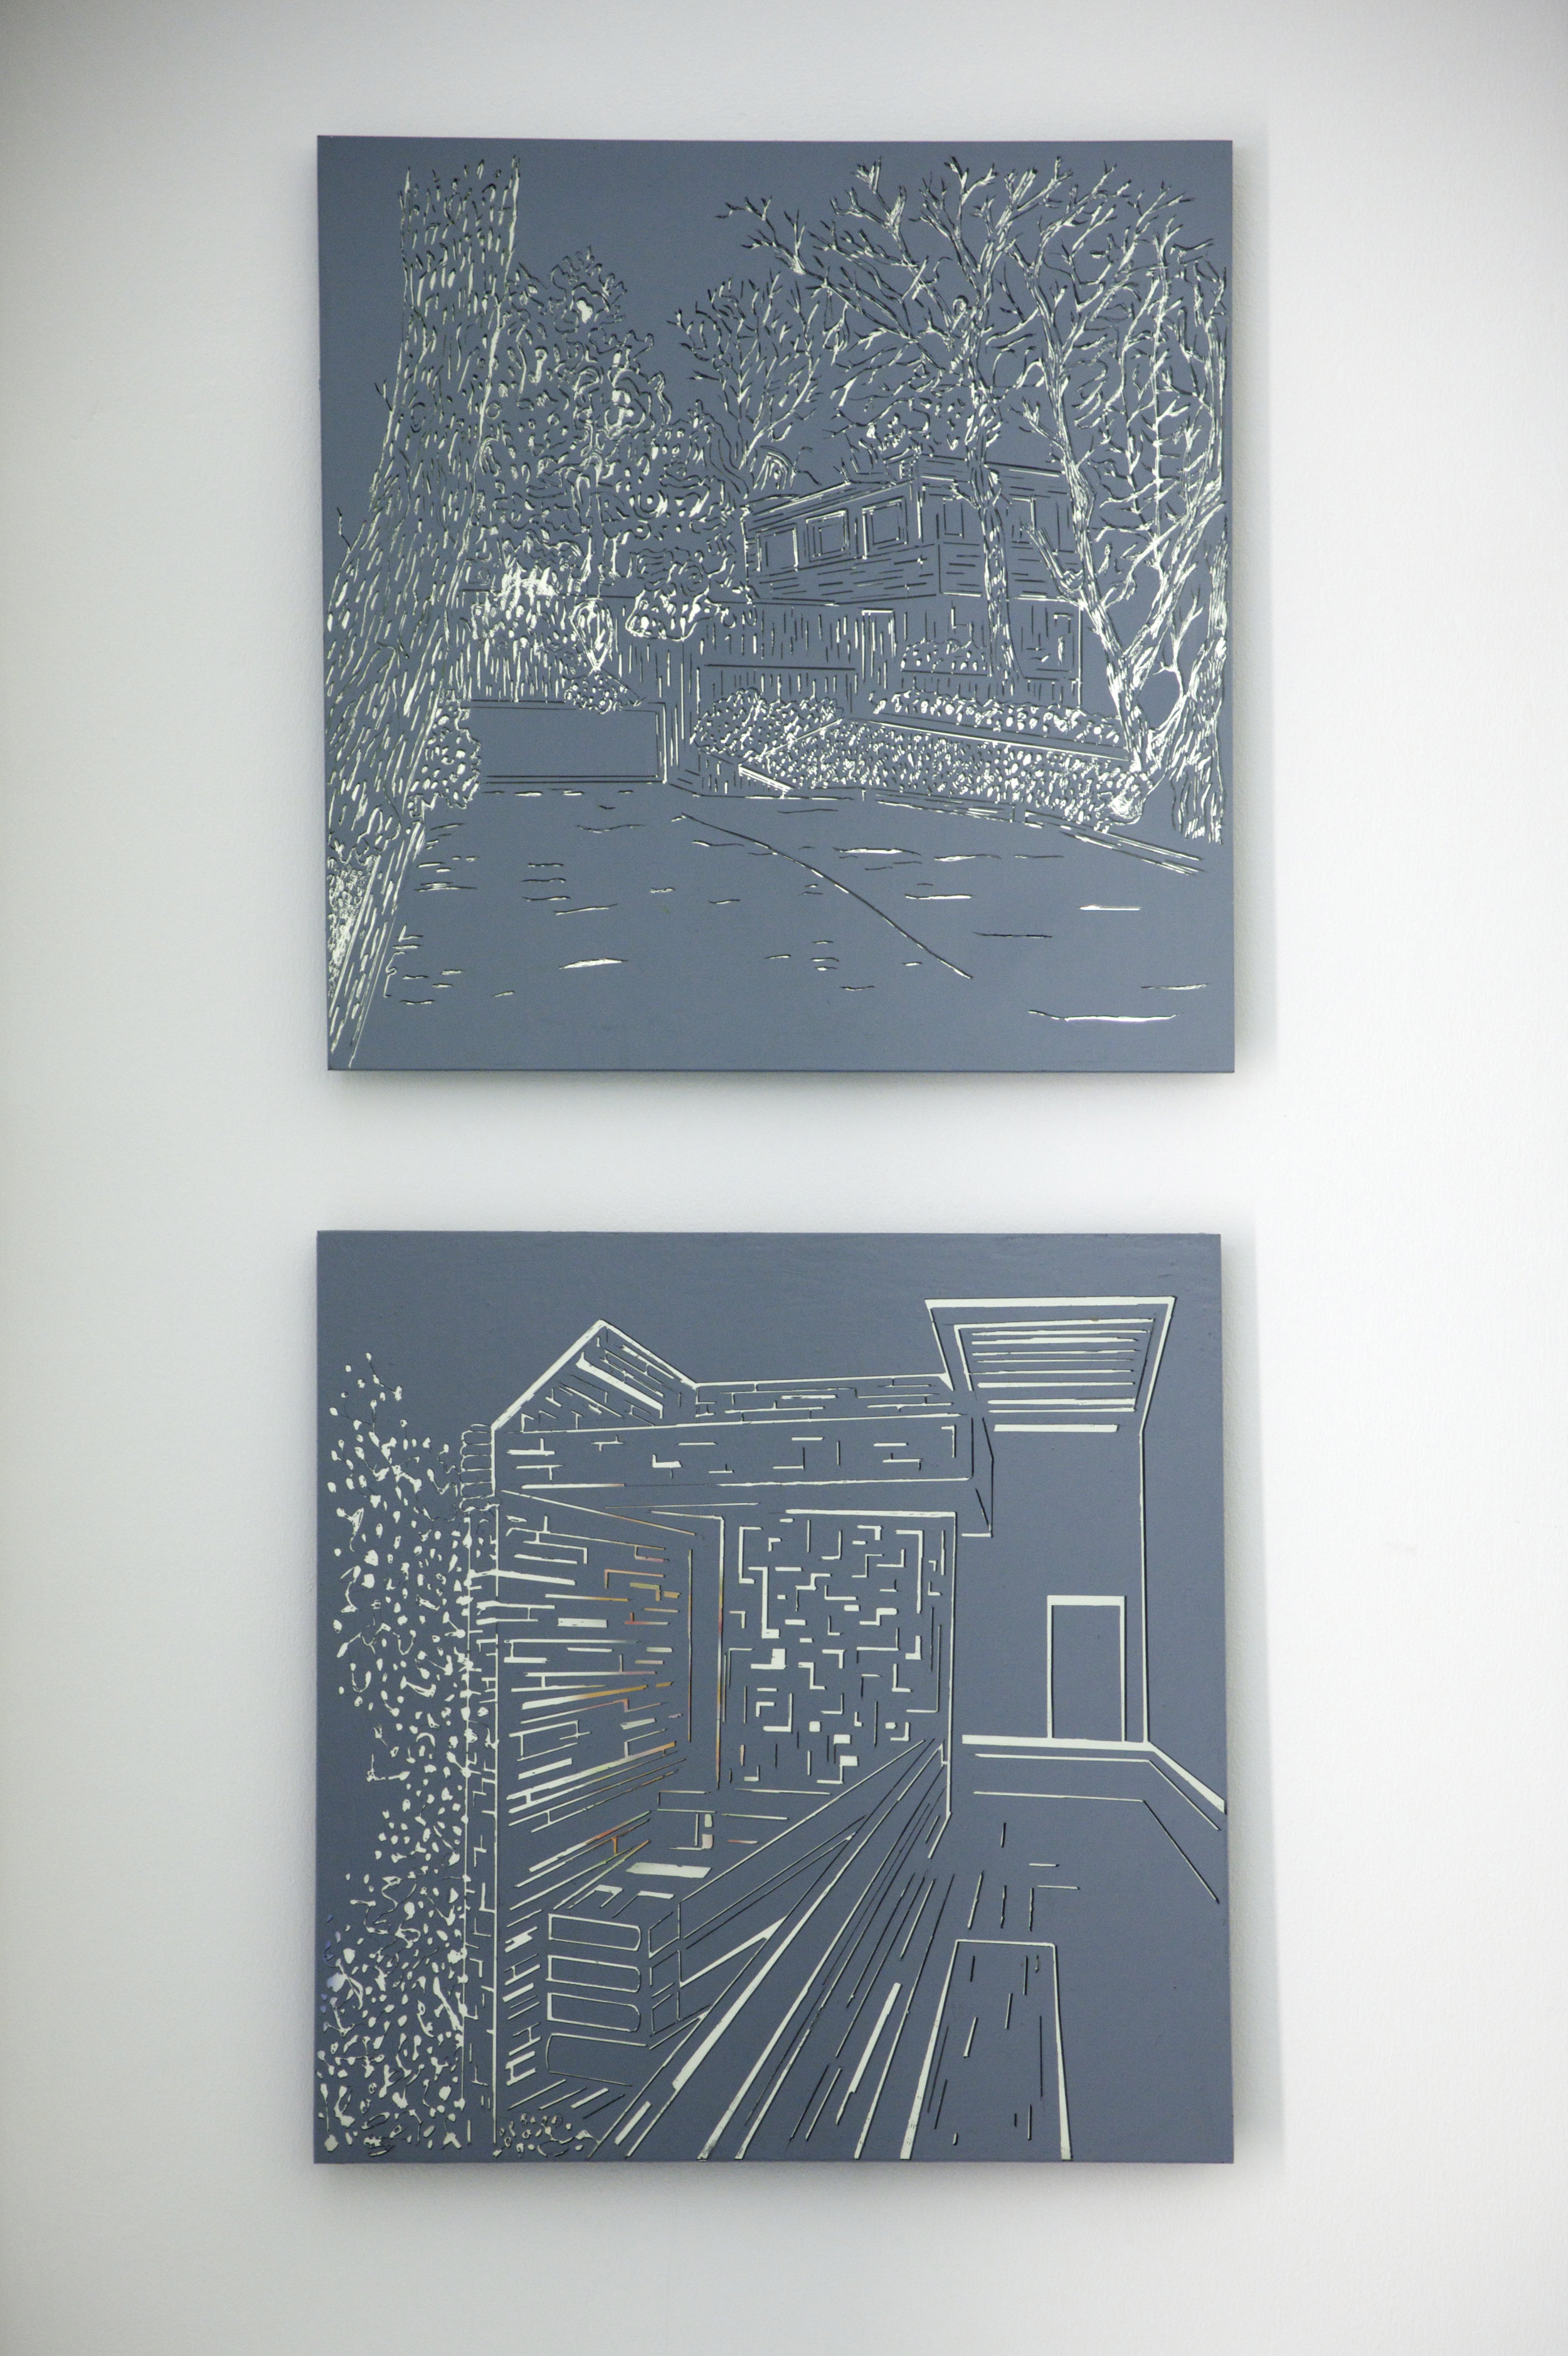 Secret Place and Untitled, 2003